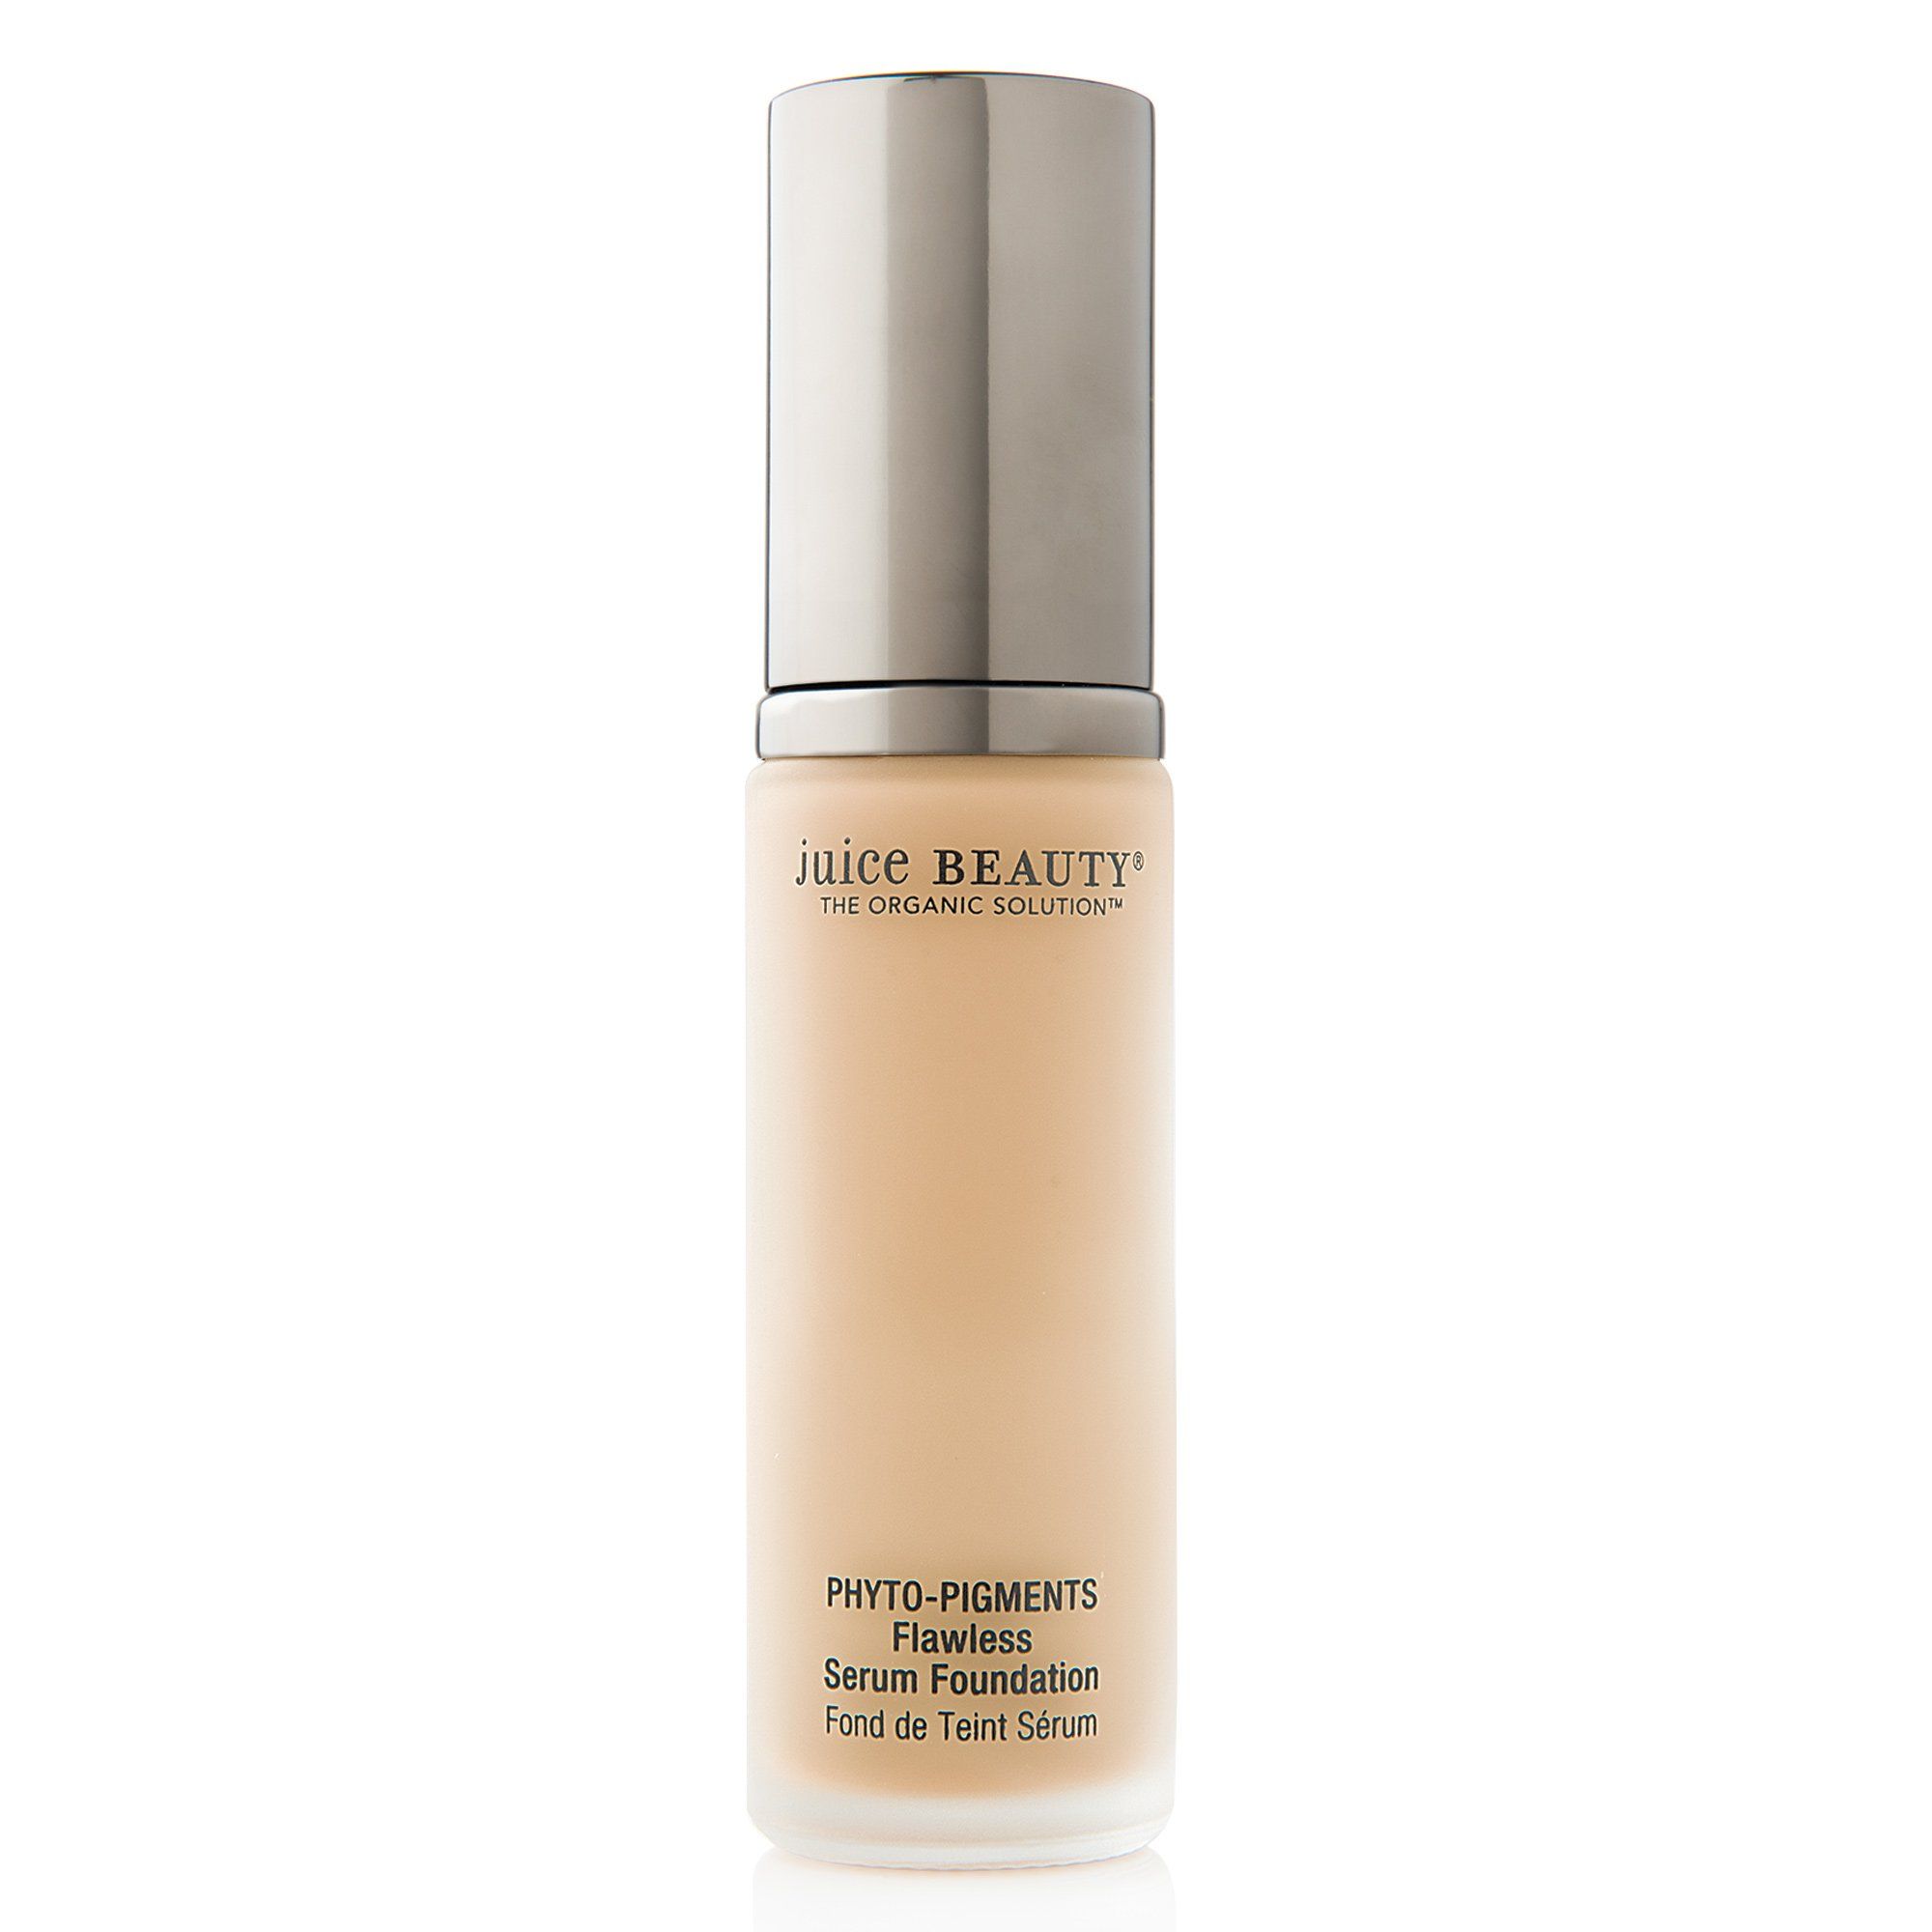 Juice Beauty Phyto-pigments Flawless Serum Foundation, Sand by Juice Beauty